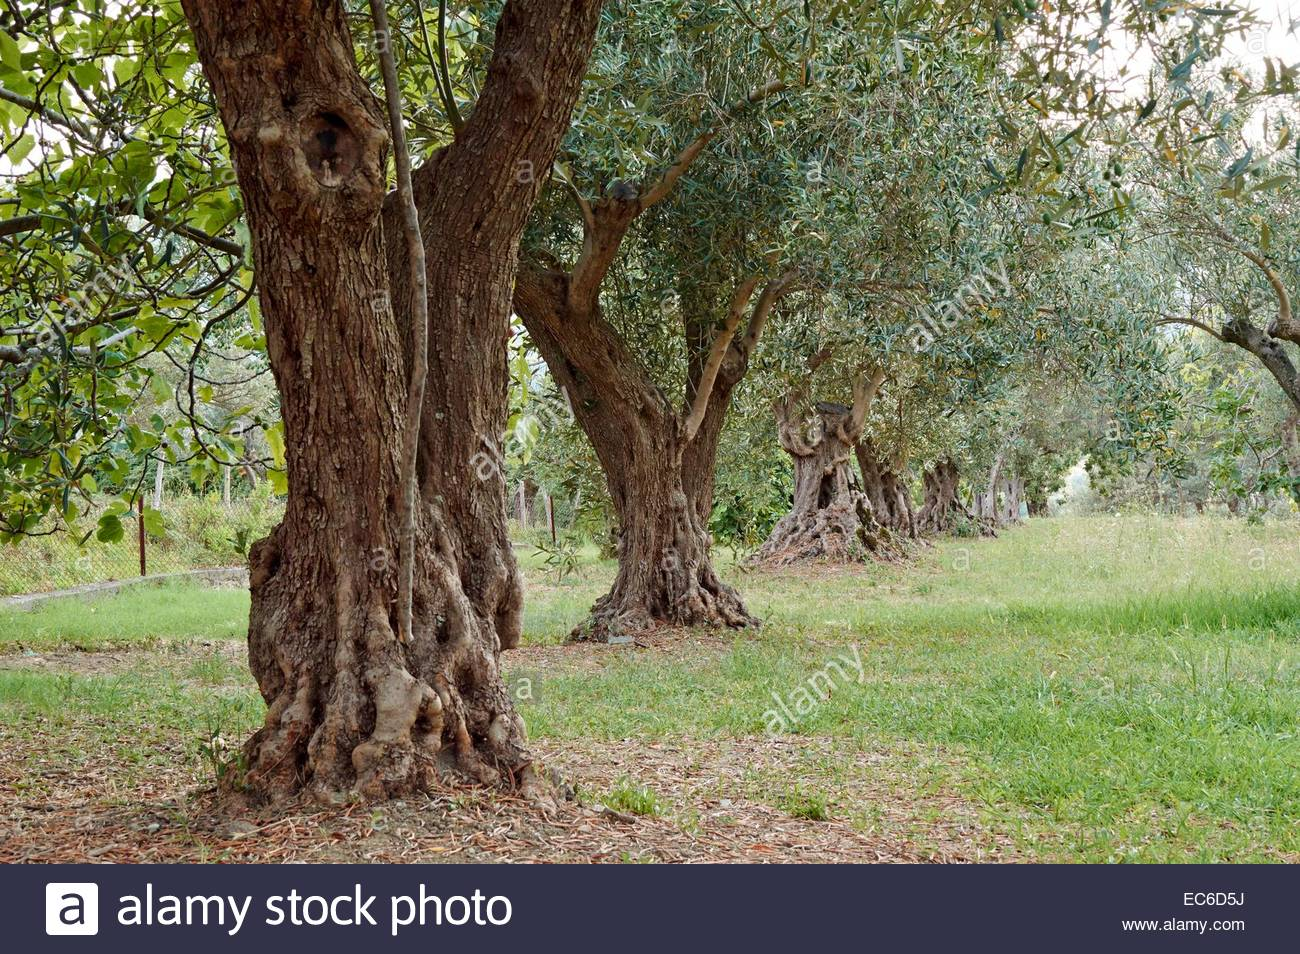 Garden Of Olives Stock Photos & Garden Of Olives Stock Images - Alamy